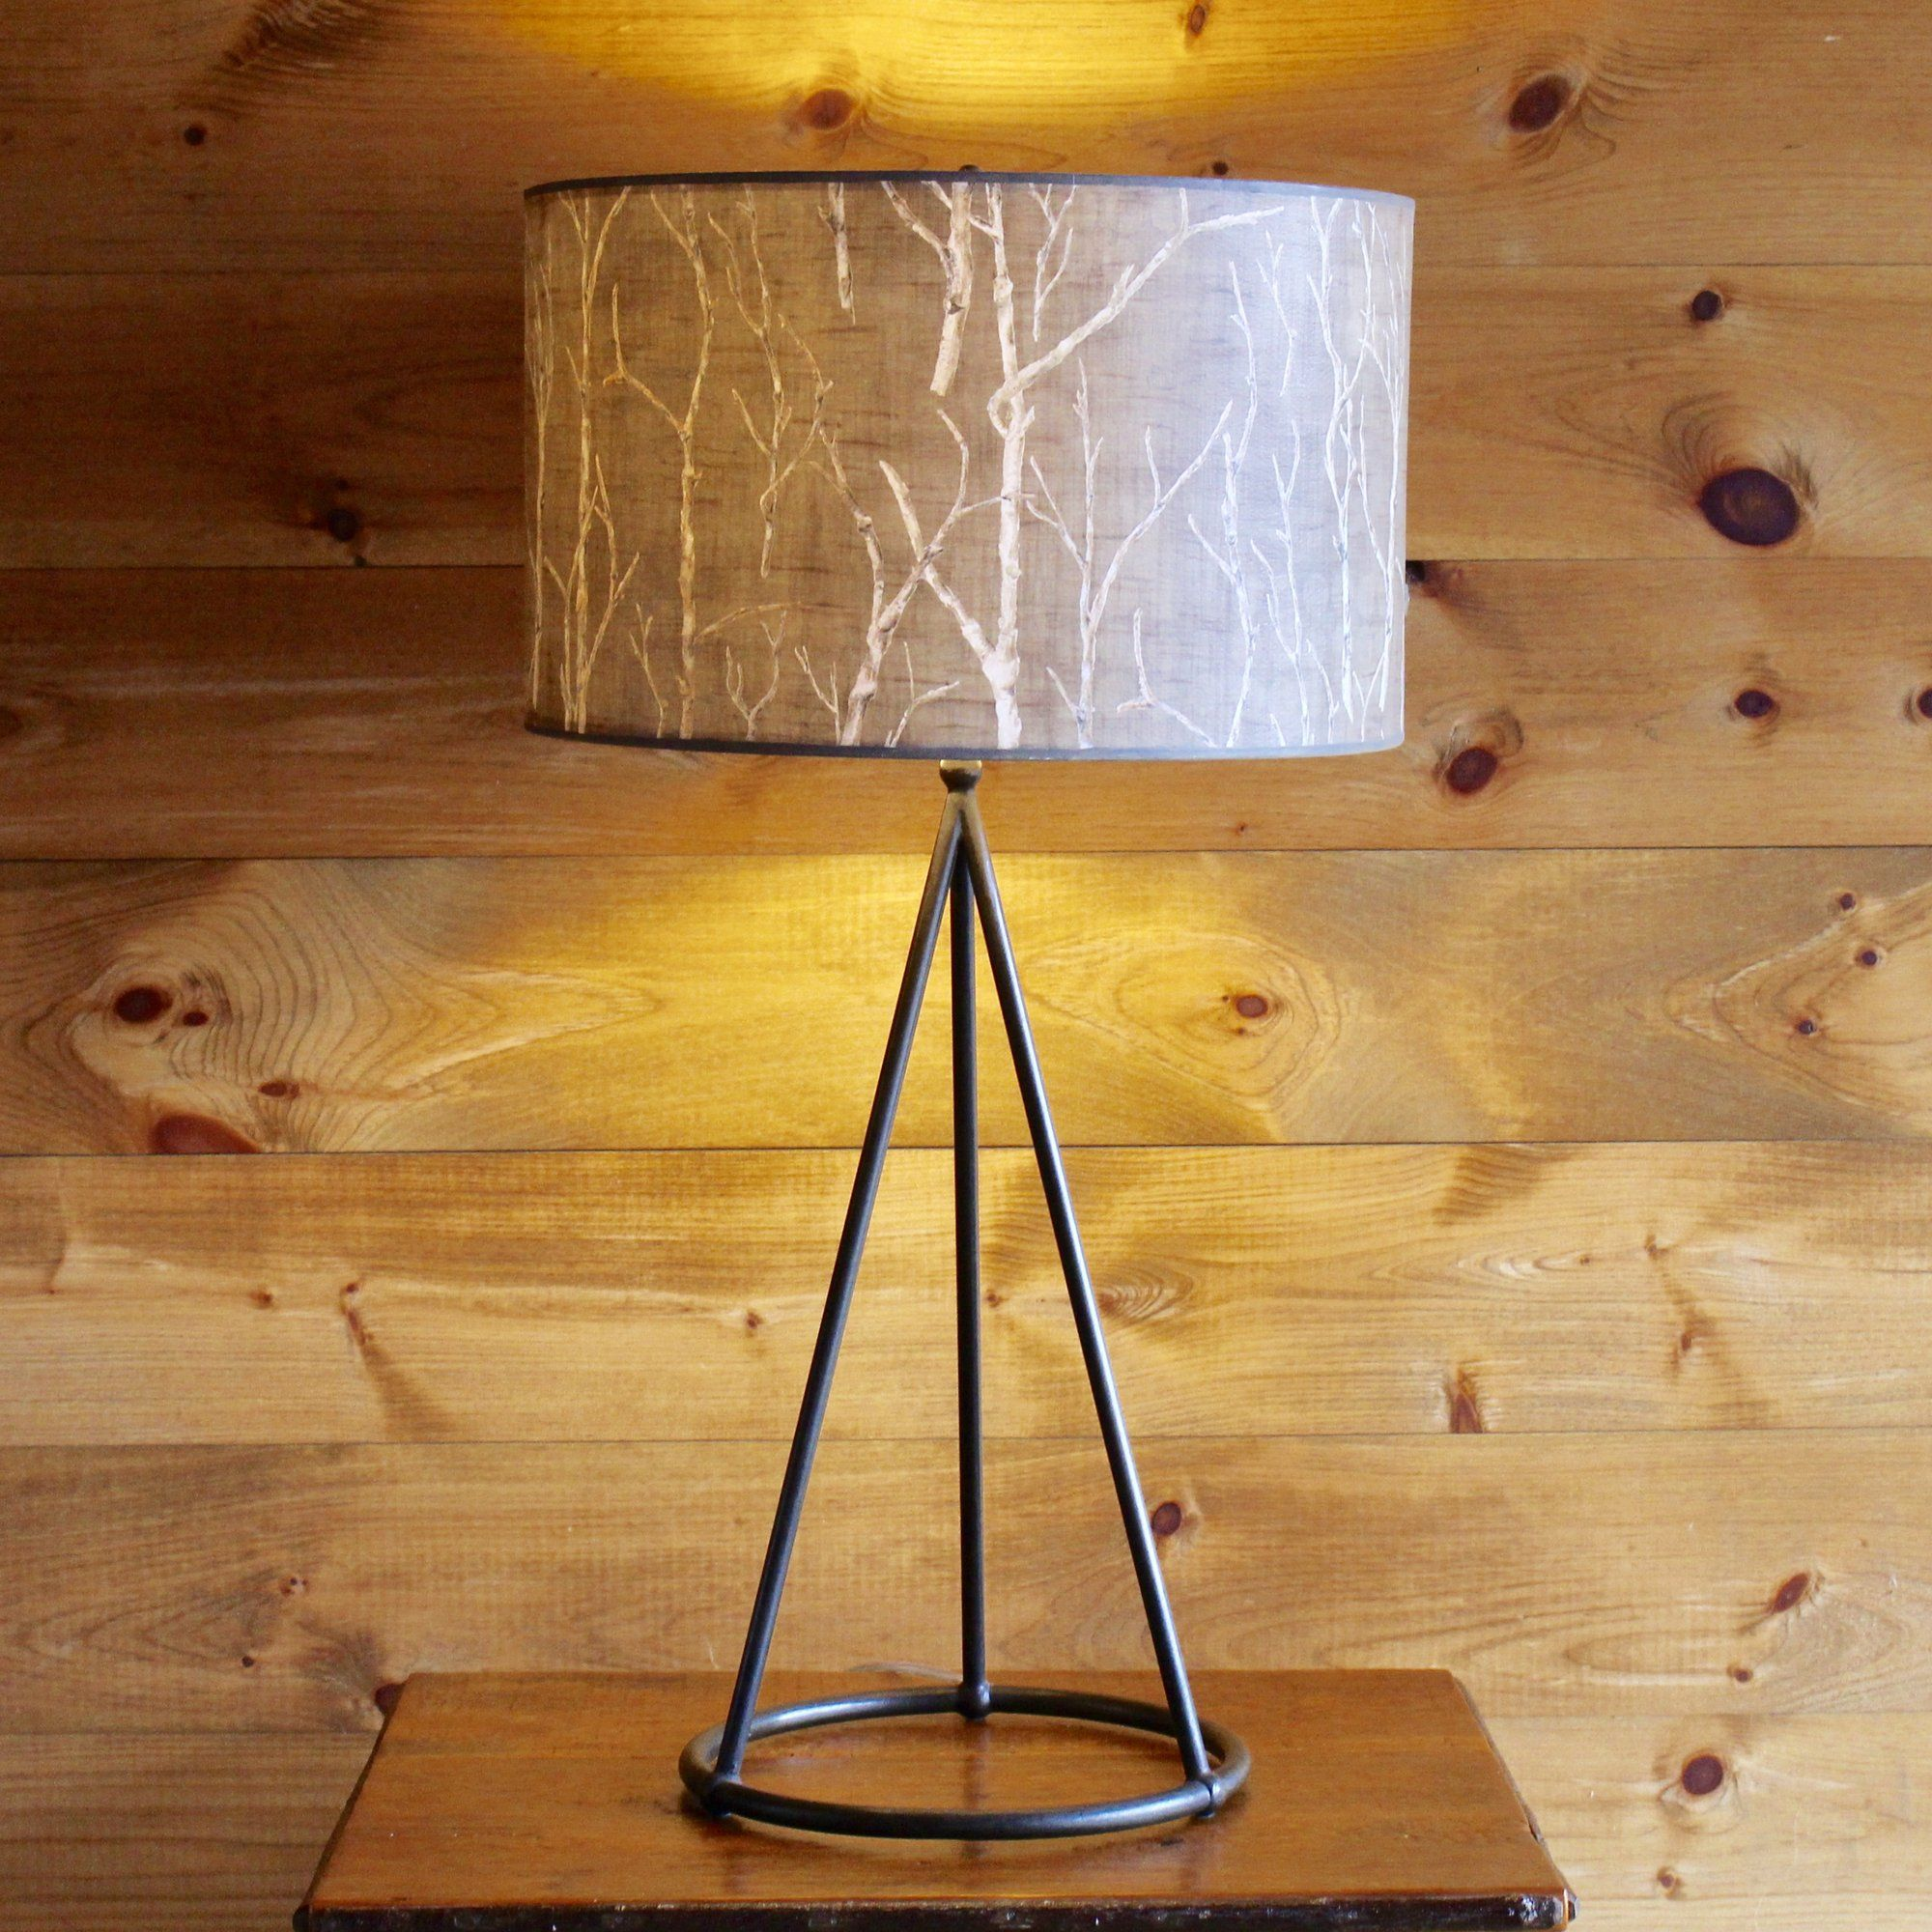 Geometry table lamp with handpainted shade white birch lamp shade geometry table lamp with handpainted shade white birch lamp shade dartbrook rustic goods mozeypictures Gallery